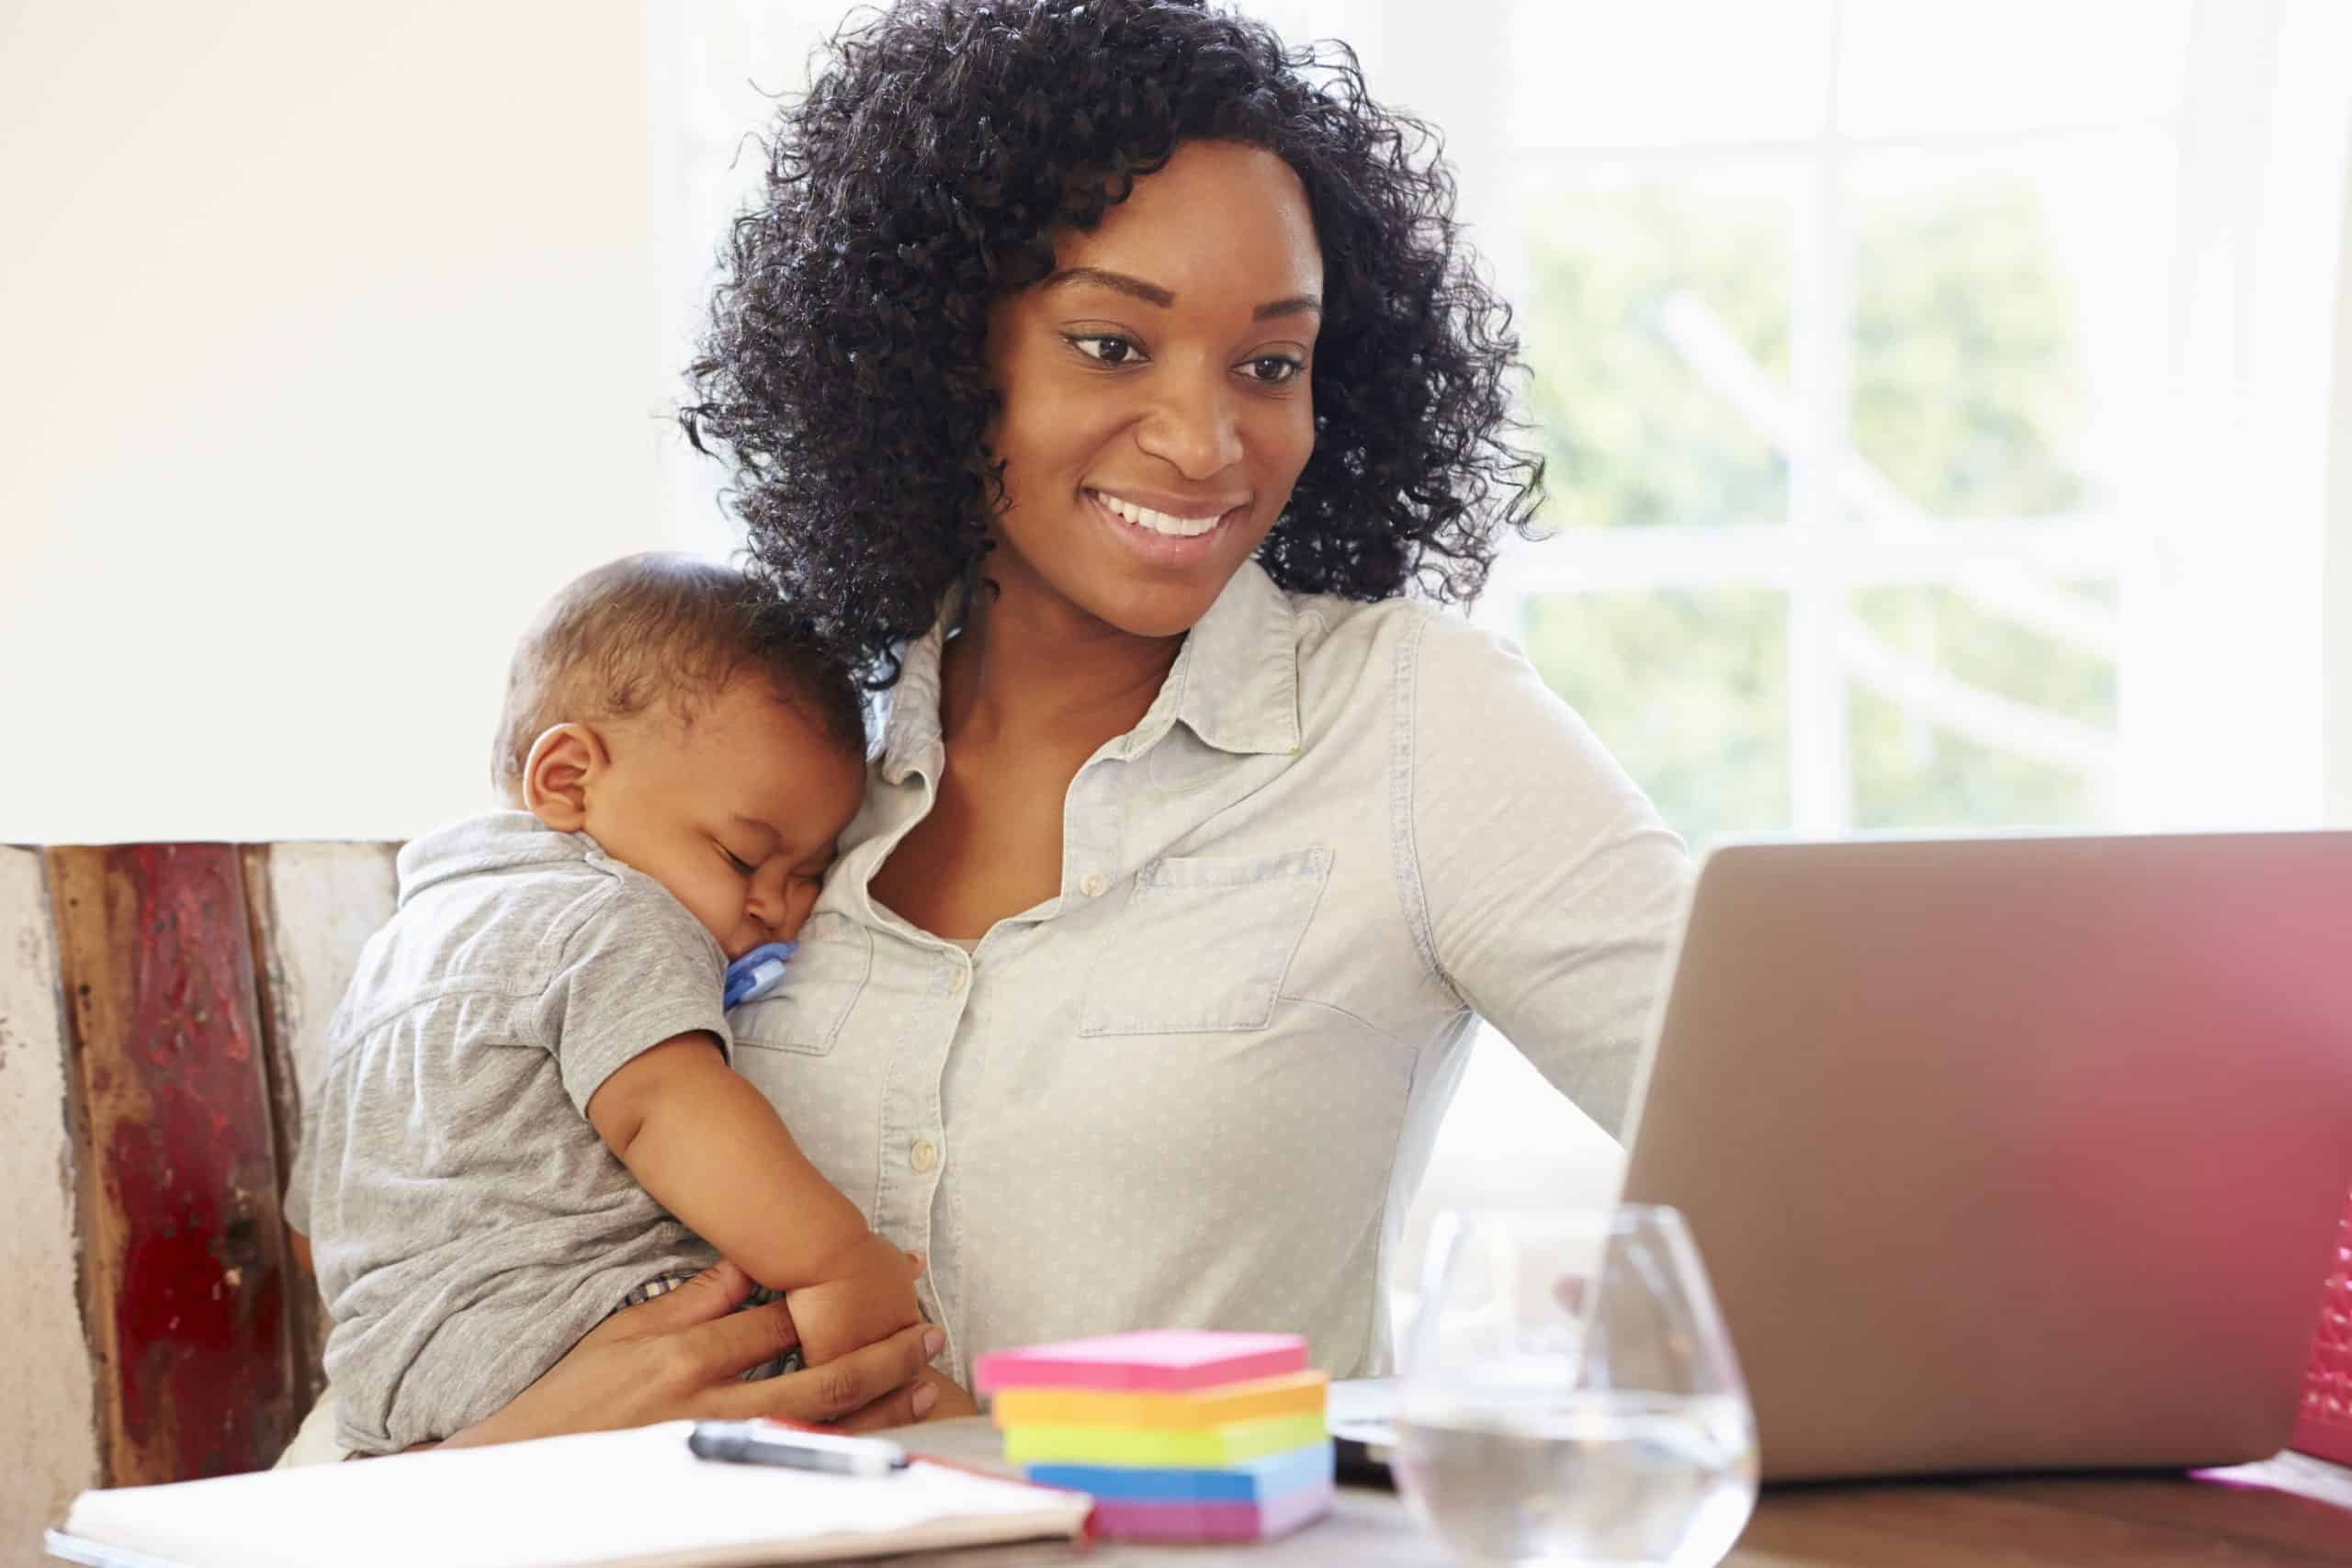 african american woman holding baby while she looks at her computer